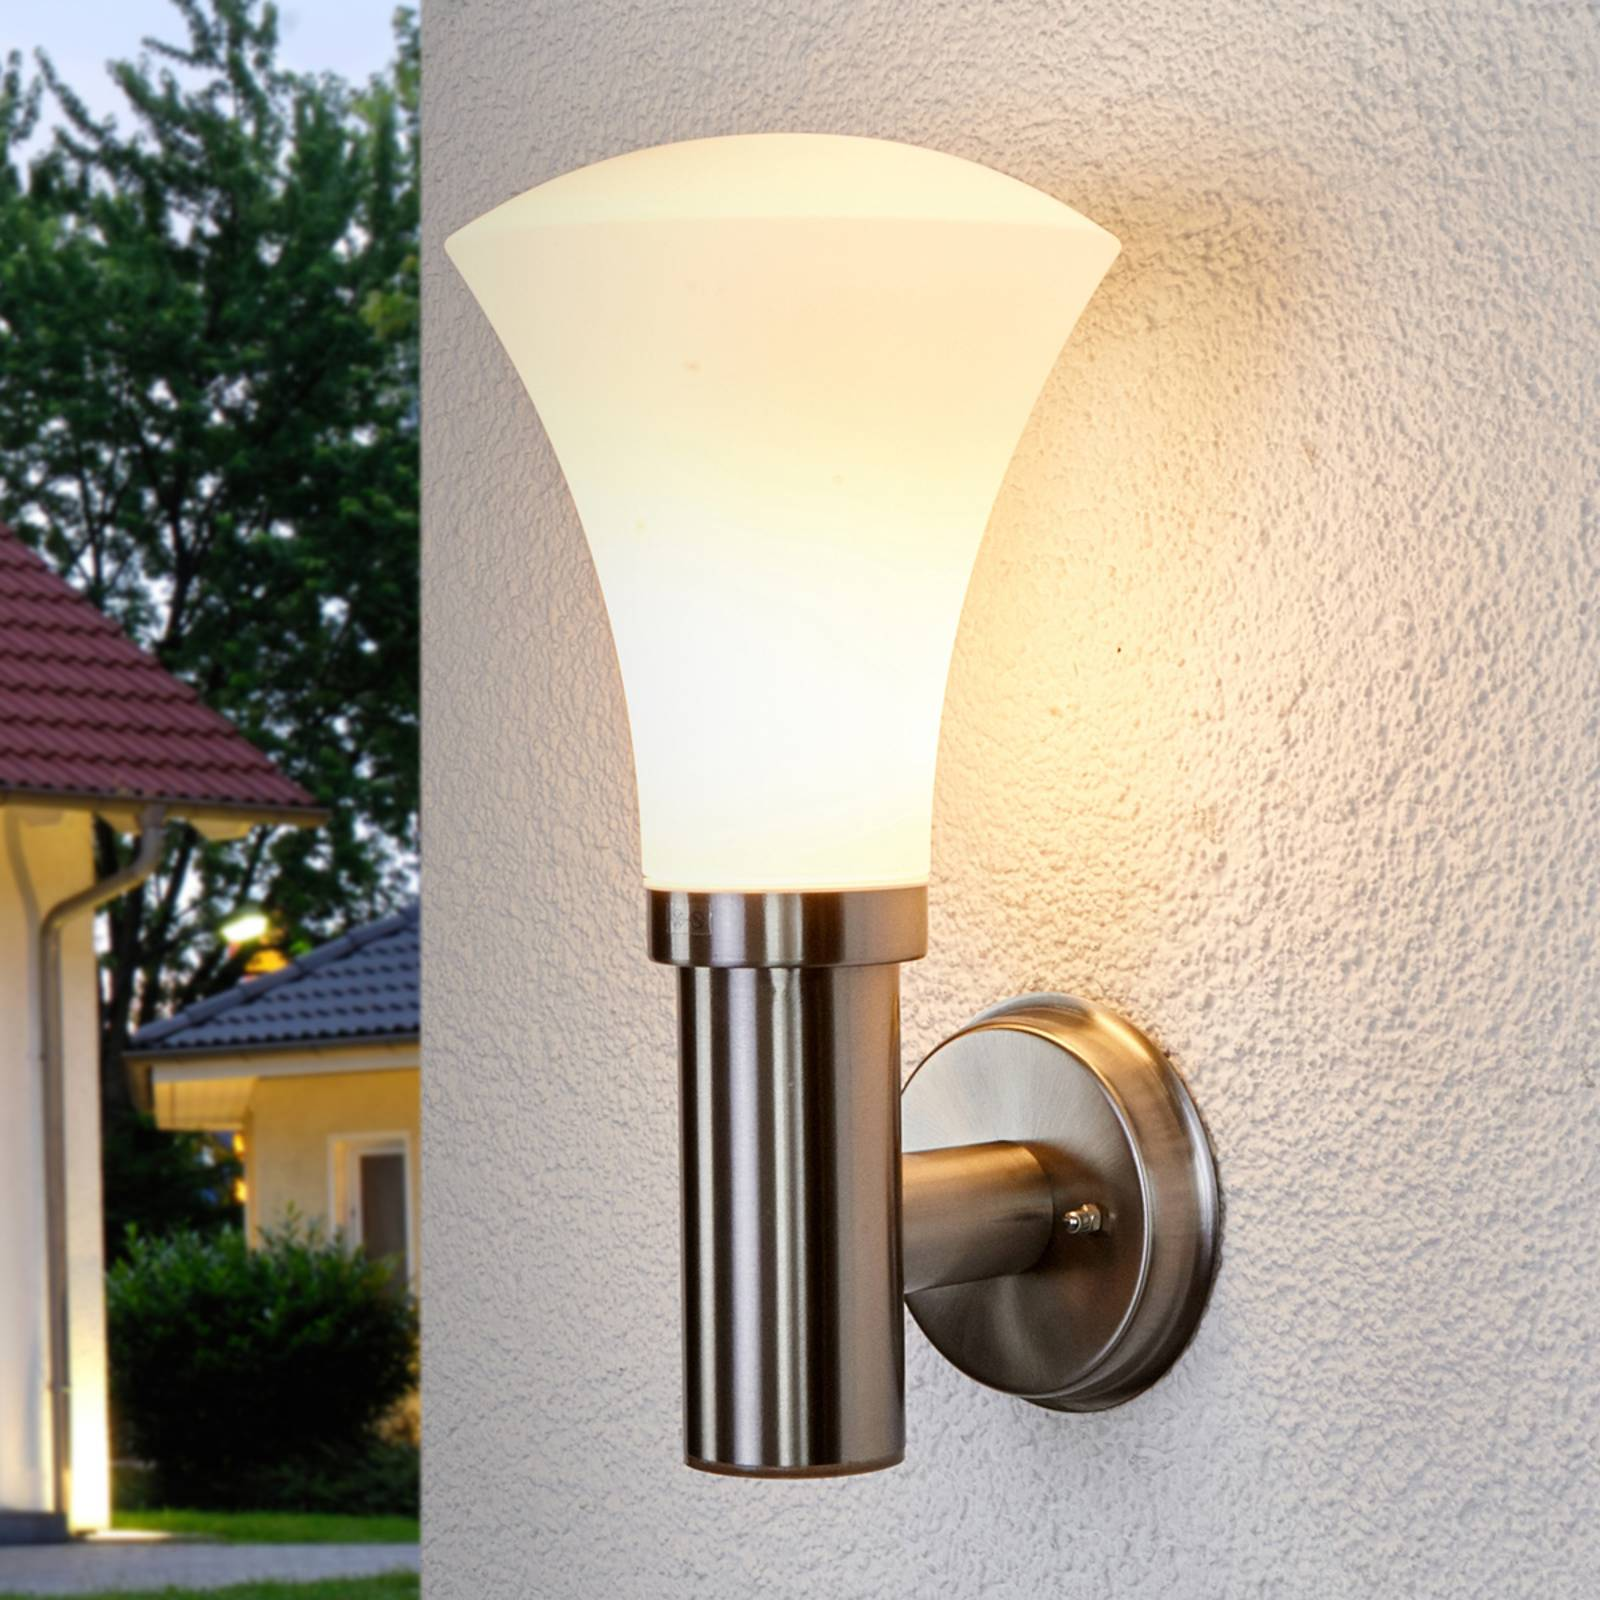 Attractive wall lamp Juliane for outdoors from Lindby